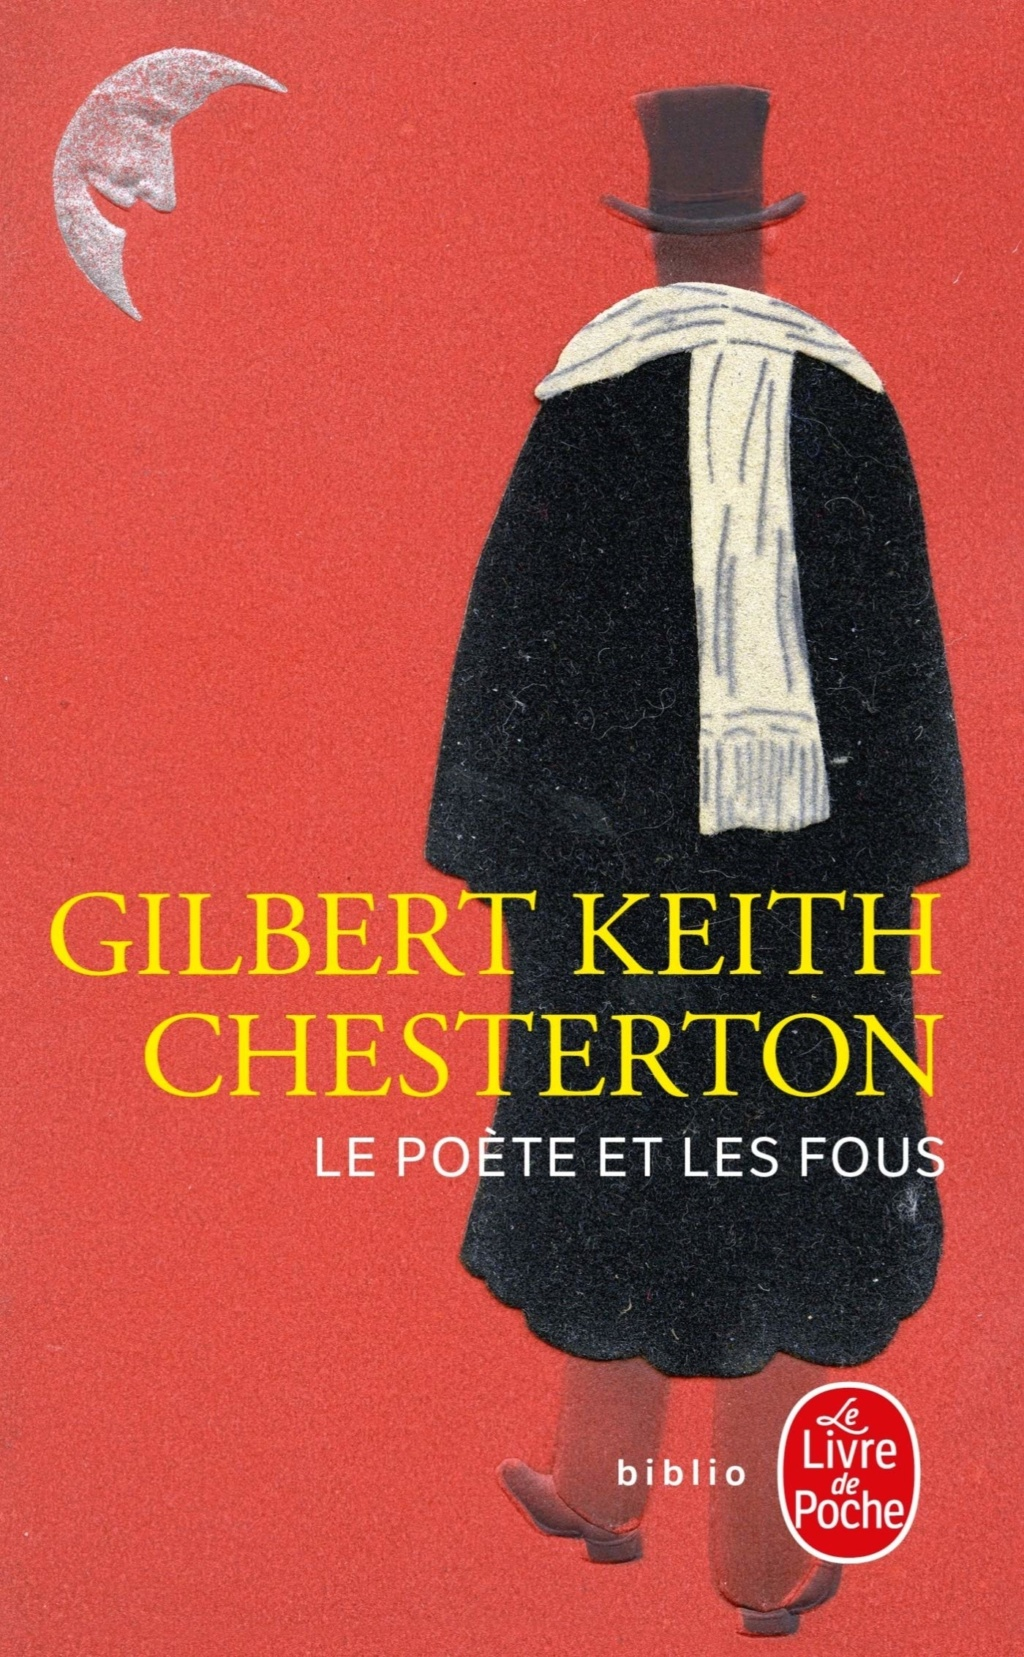 absurde - Gilbert-Keith Chesterton - Page 3 Le_poz11